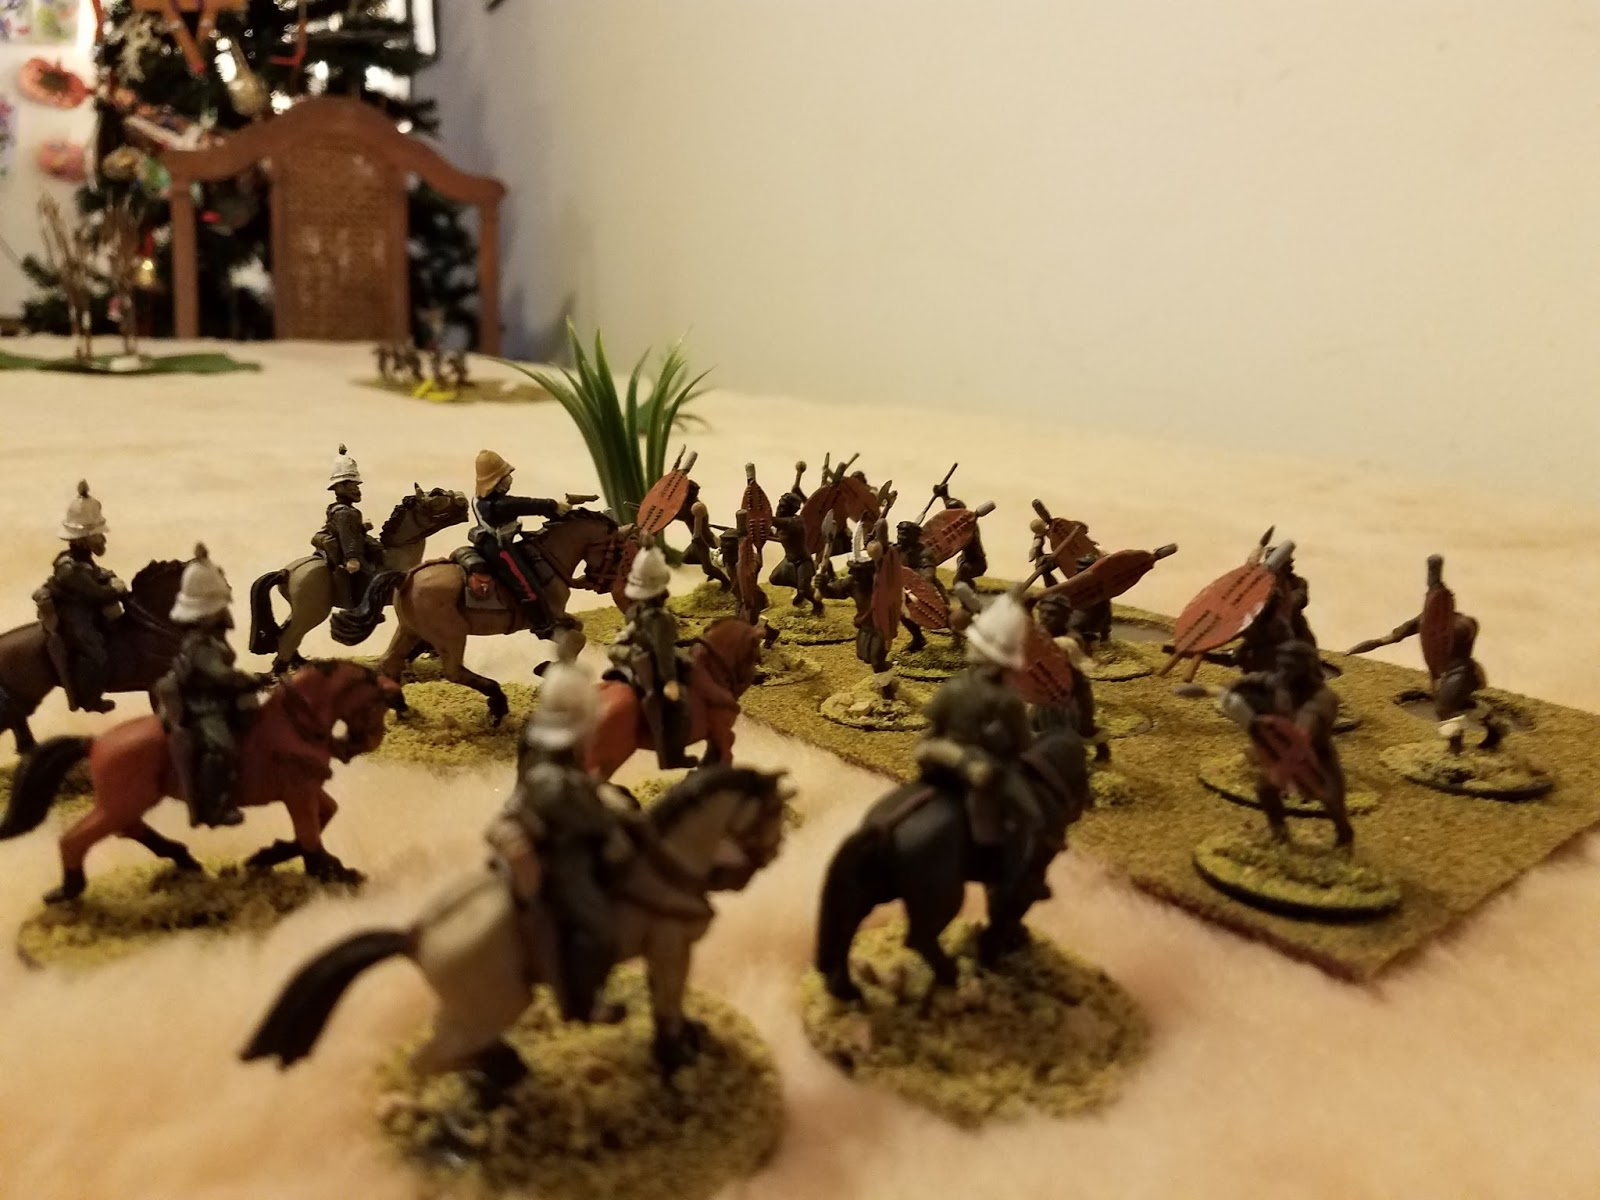 Phil's Epic Wargaming Adventure: The Men Who Would be Kings: Rules